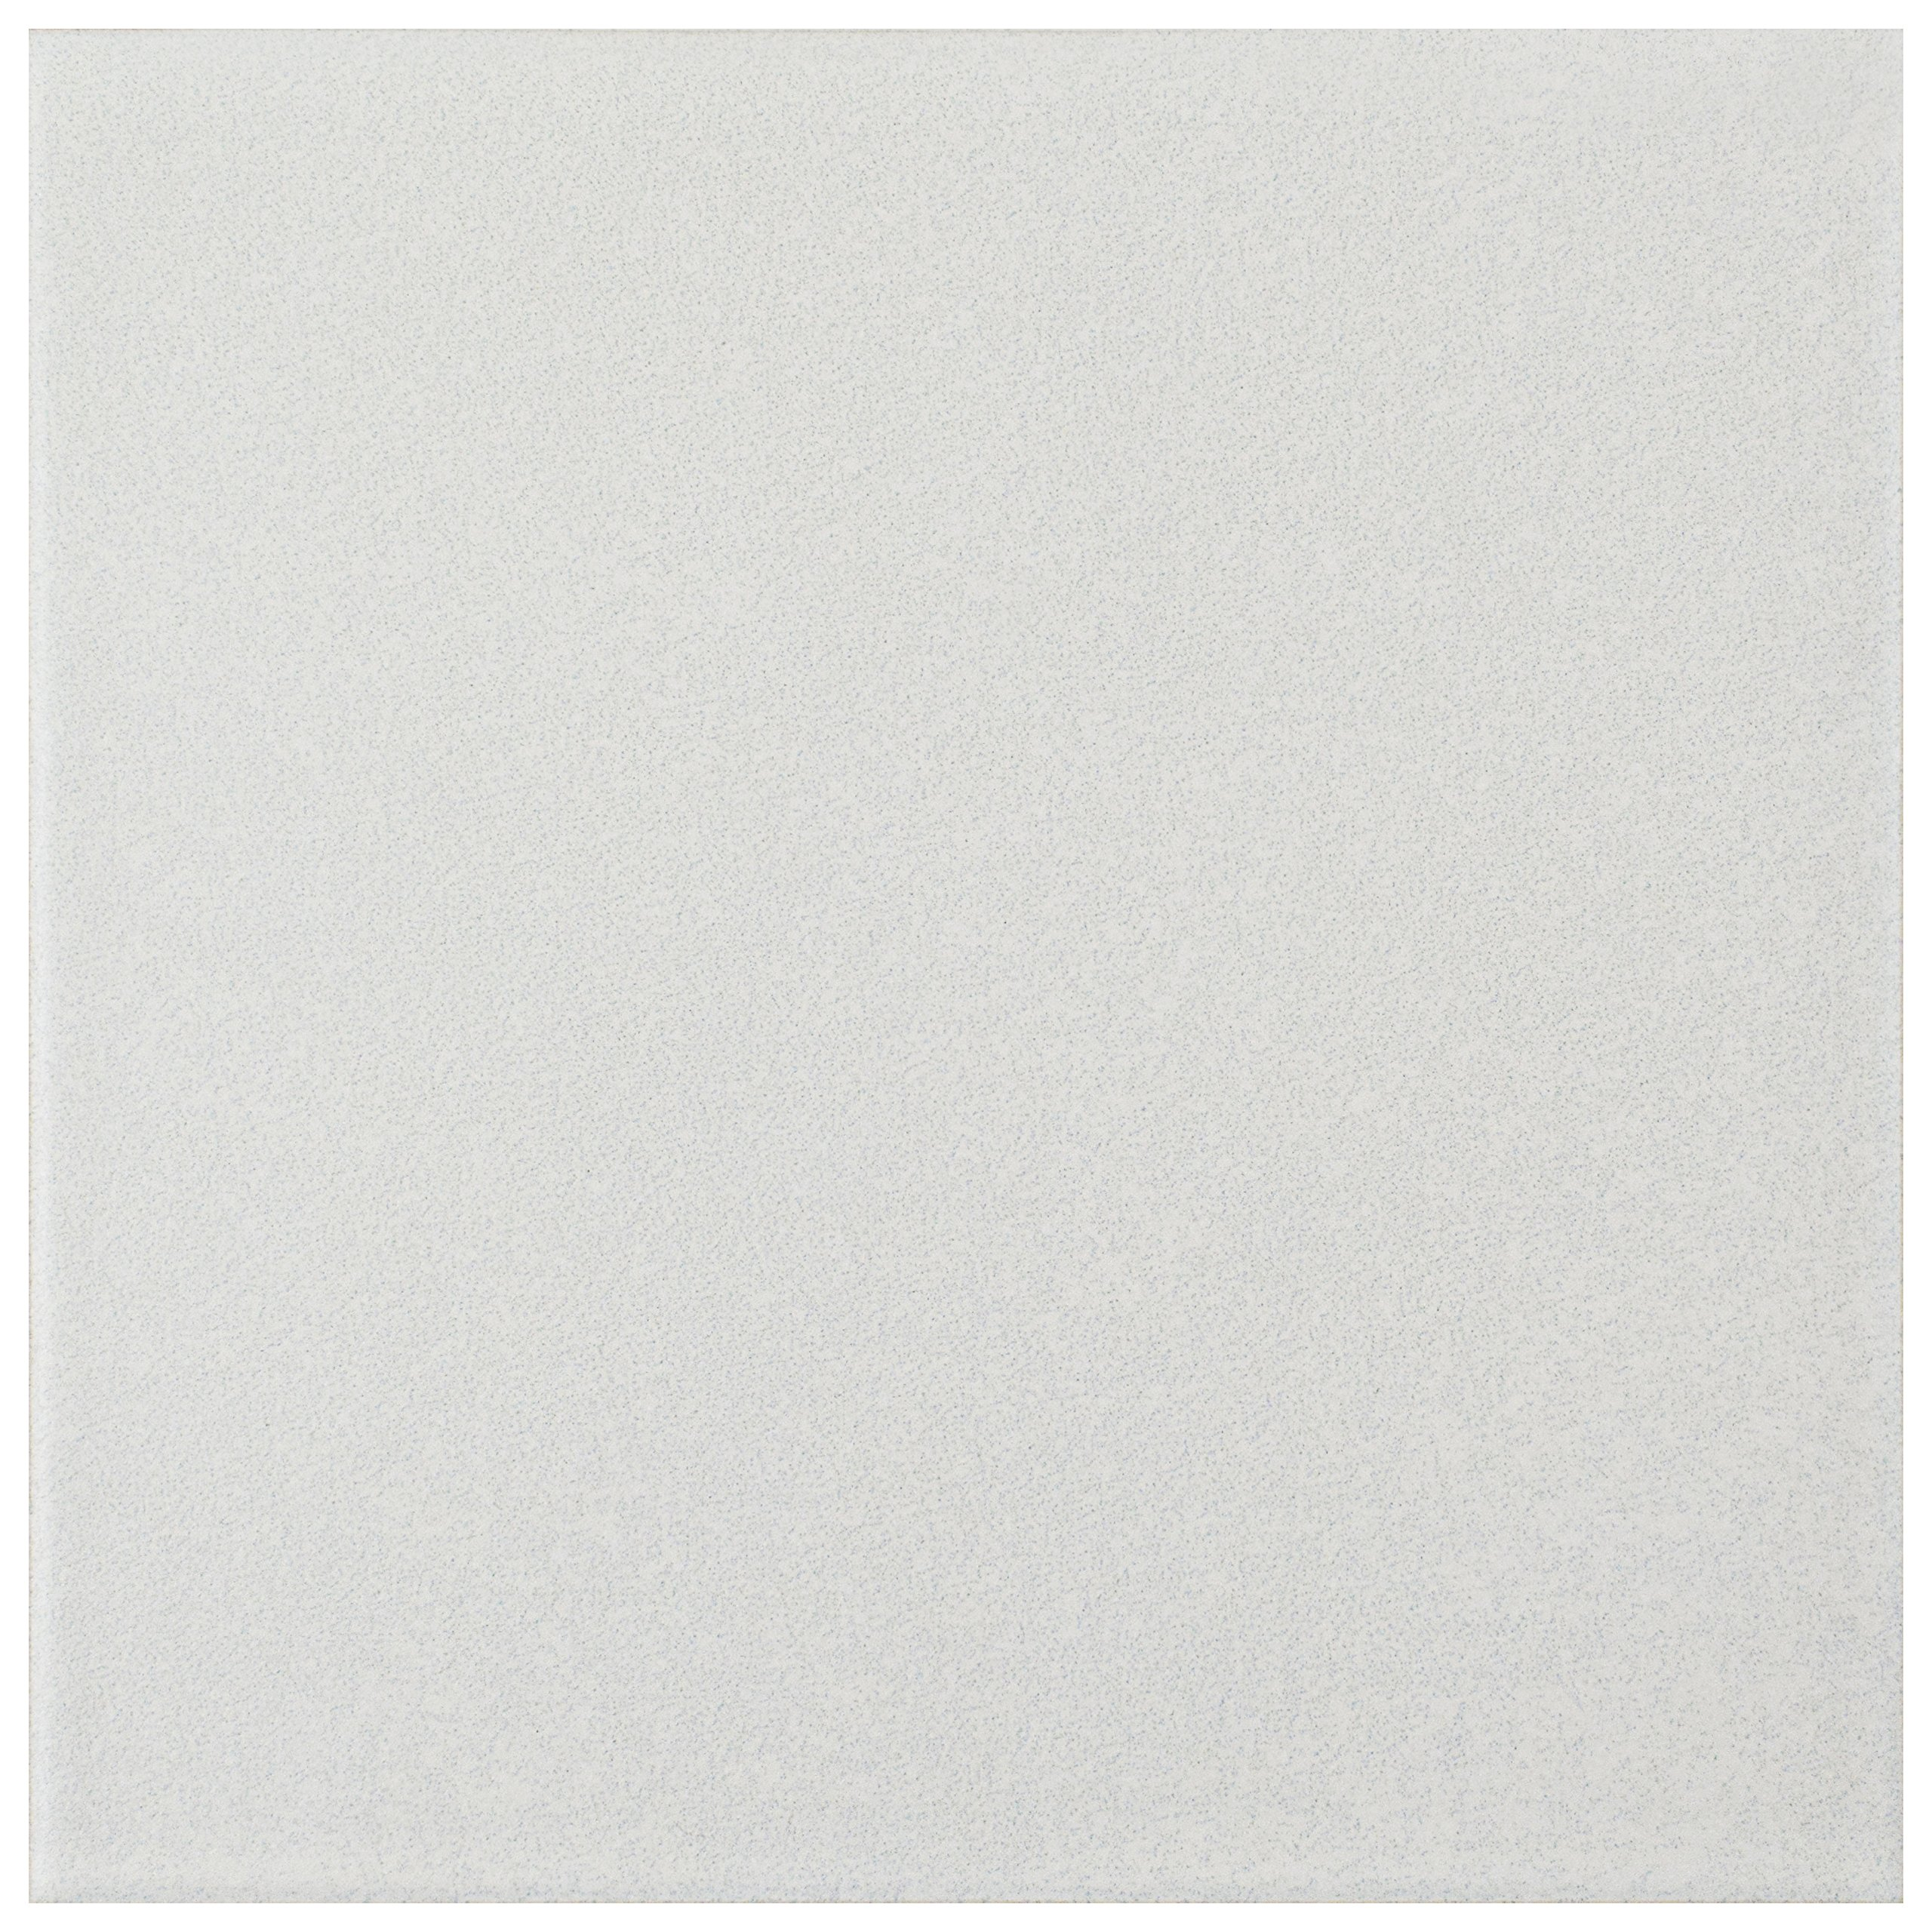 SomerTile FRC8TWEW Fifties Ceramic Floor and Wall Tile, 7.75'' x 7.75'', White